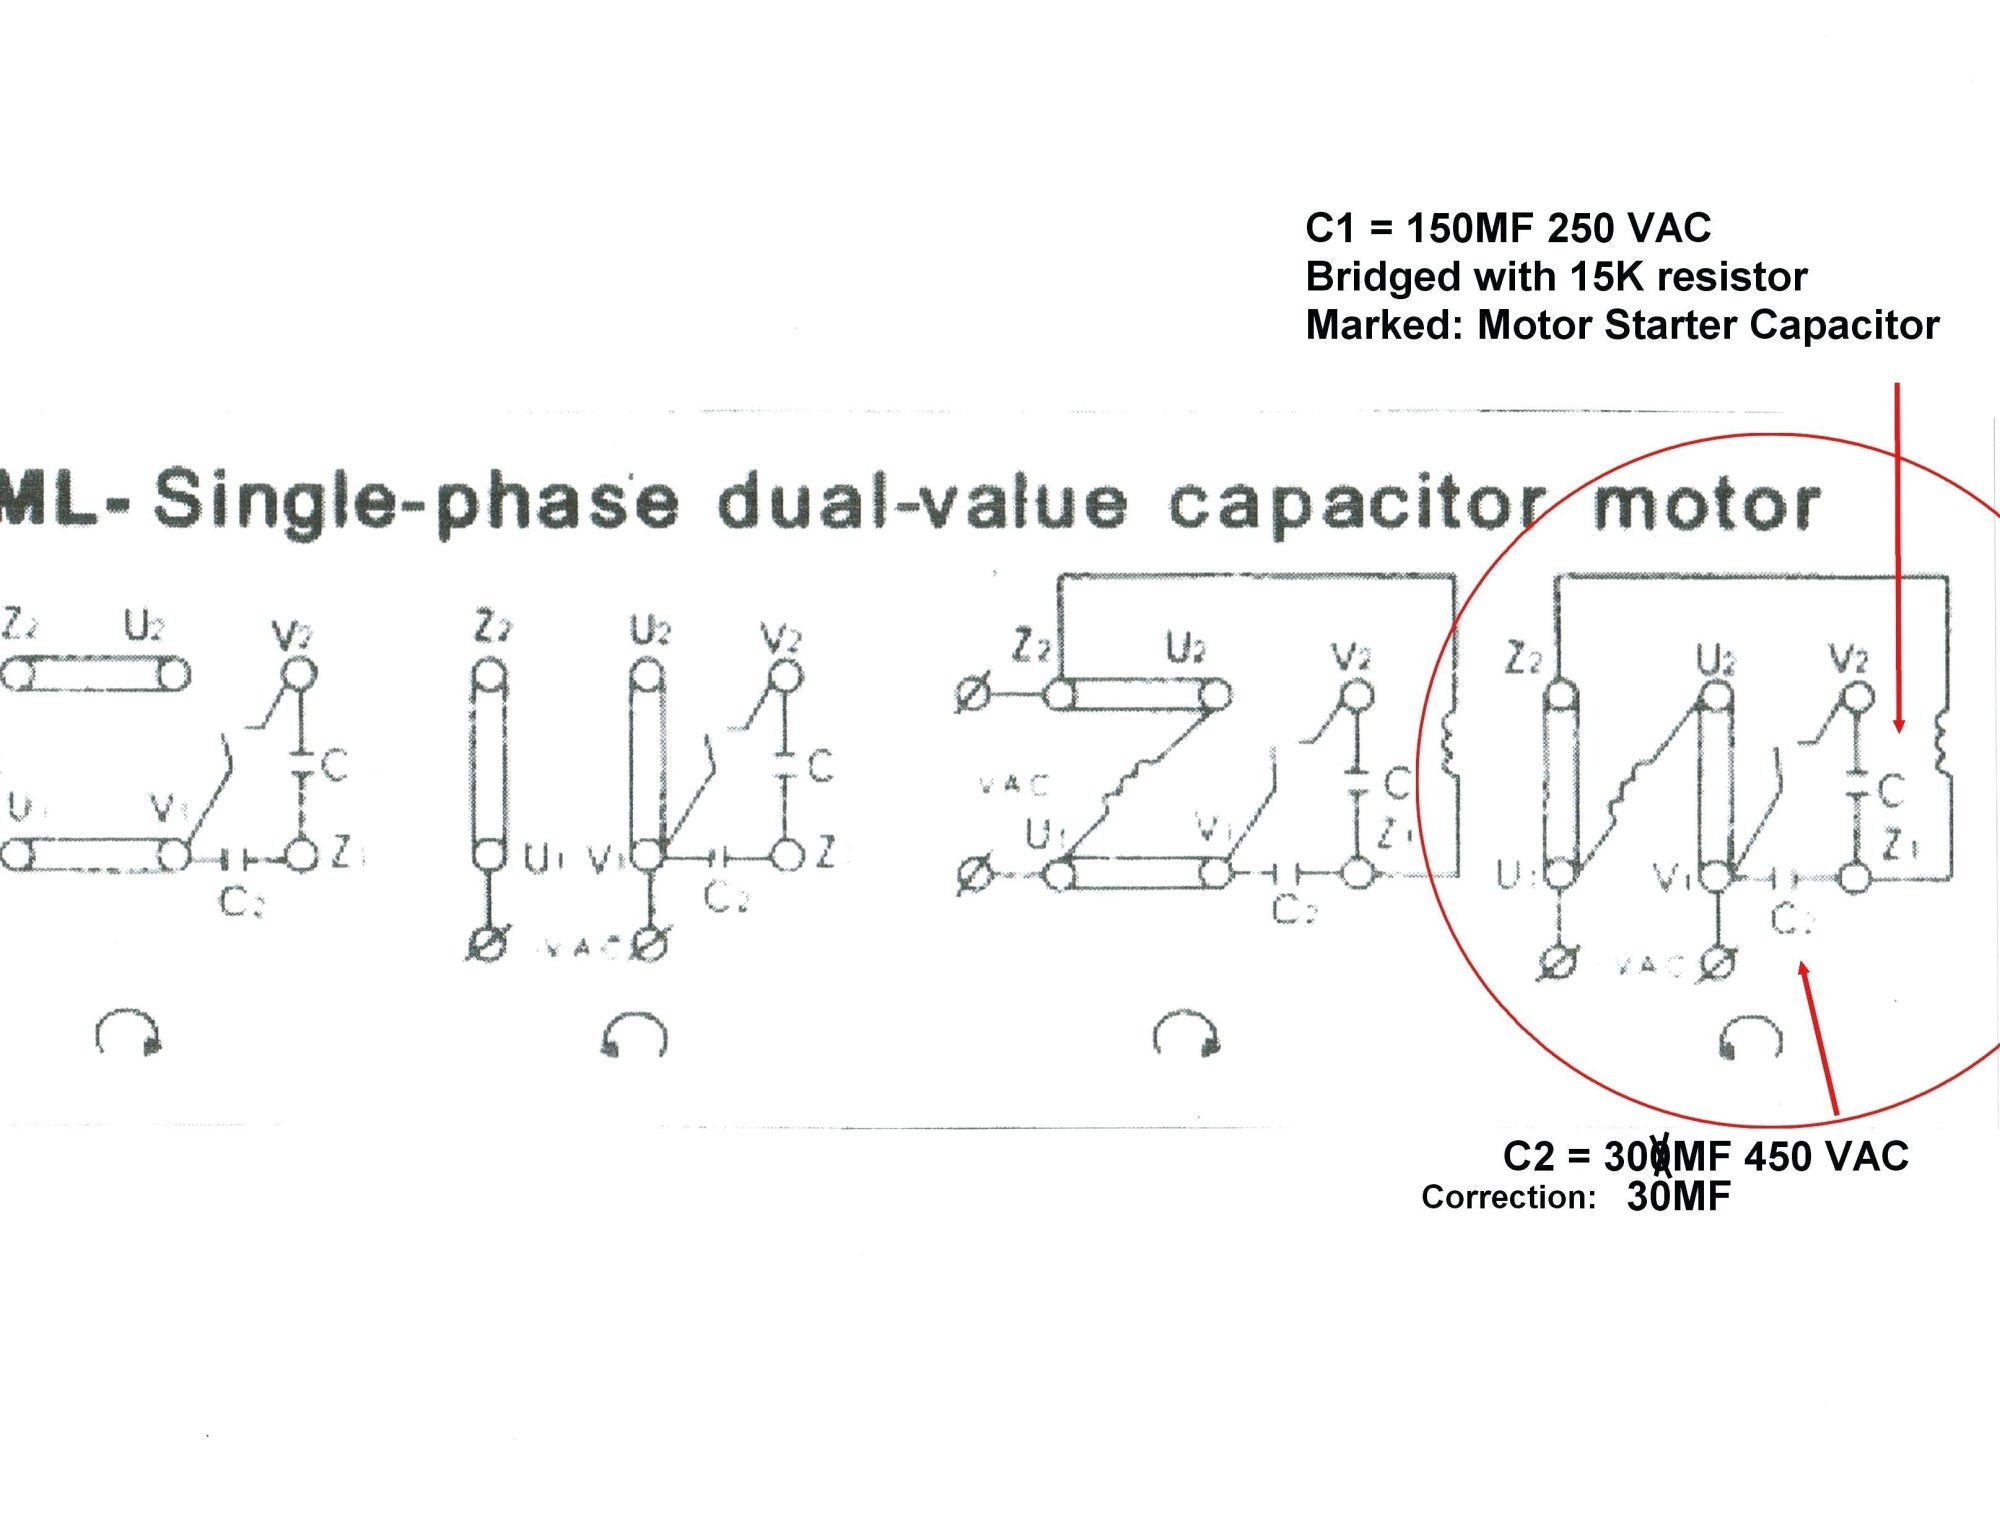 hight resolution of electric motor wiring diagram 110 to 220 wiring diagram for electric motor with capacitor best